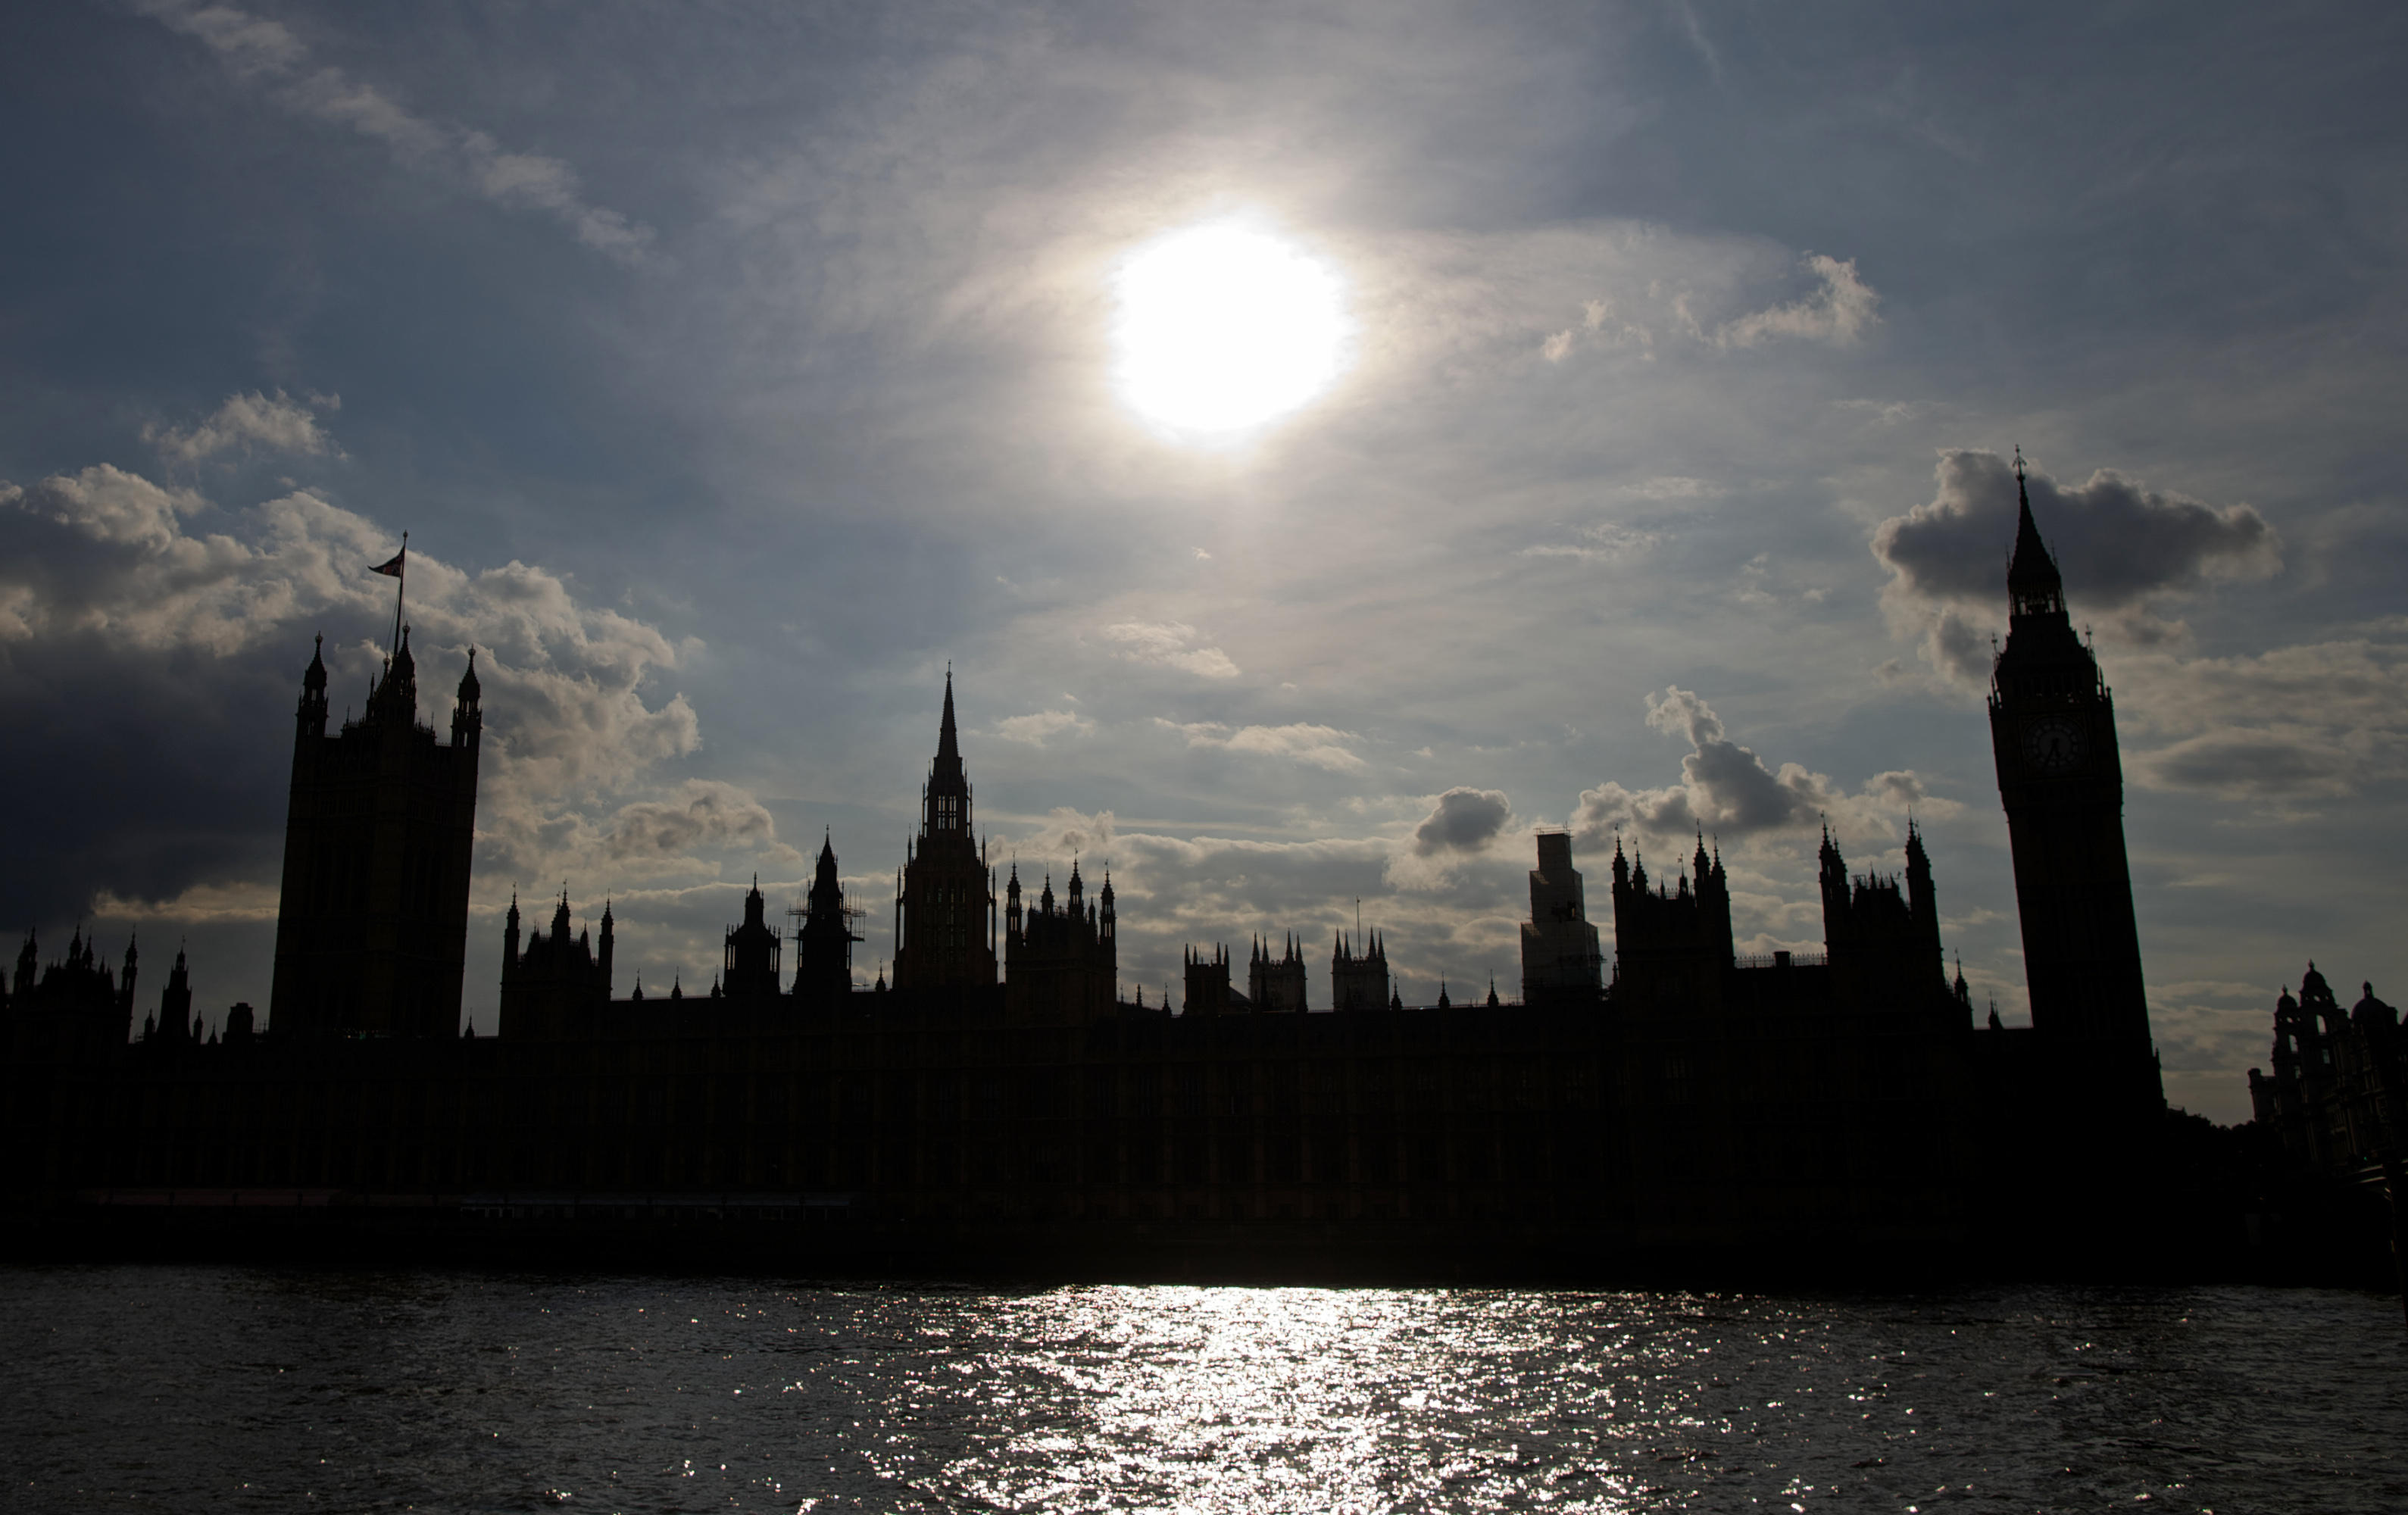 The Houses of Parliament silhouetted against a setting sun